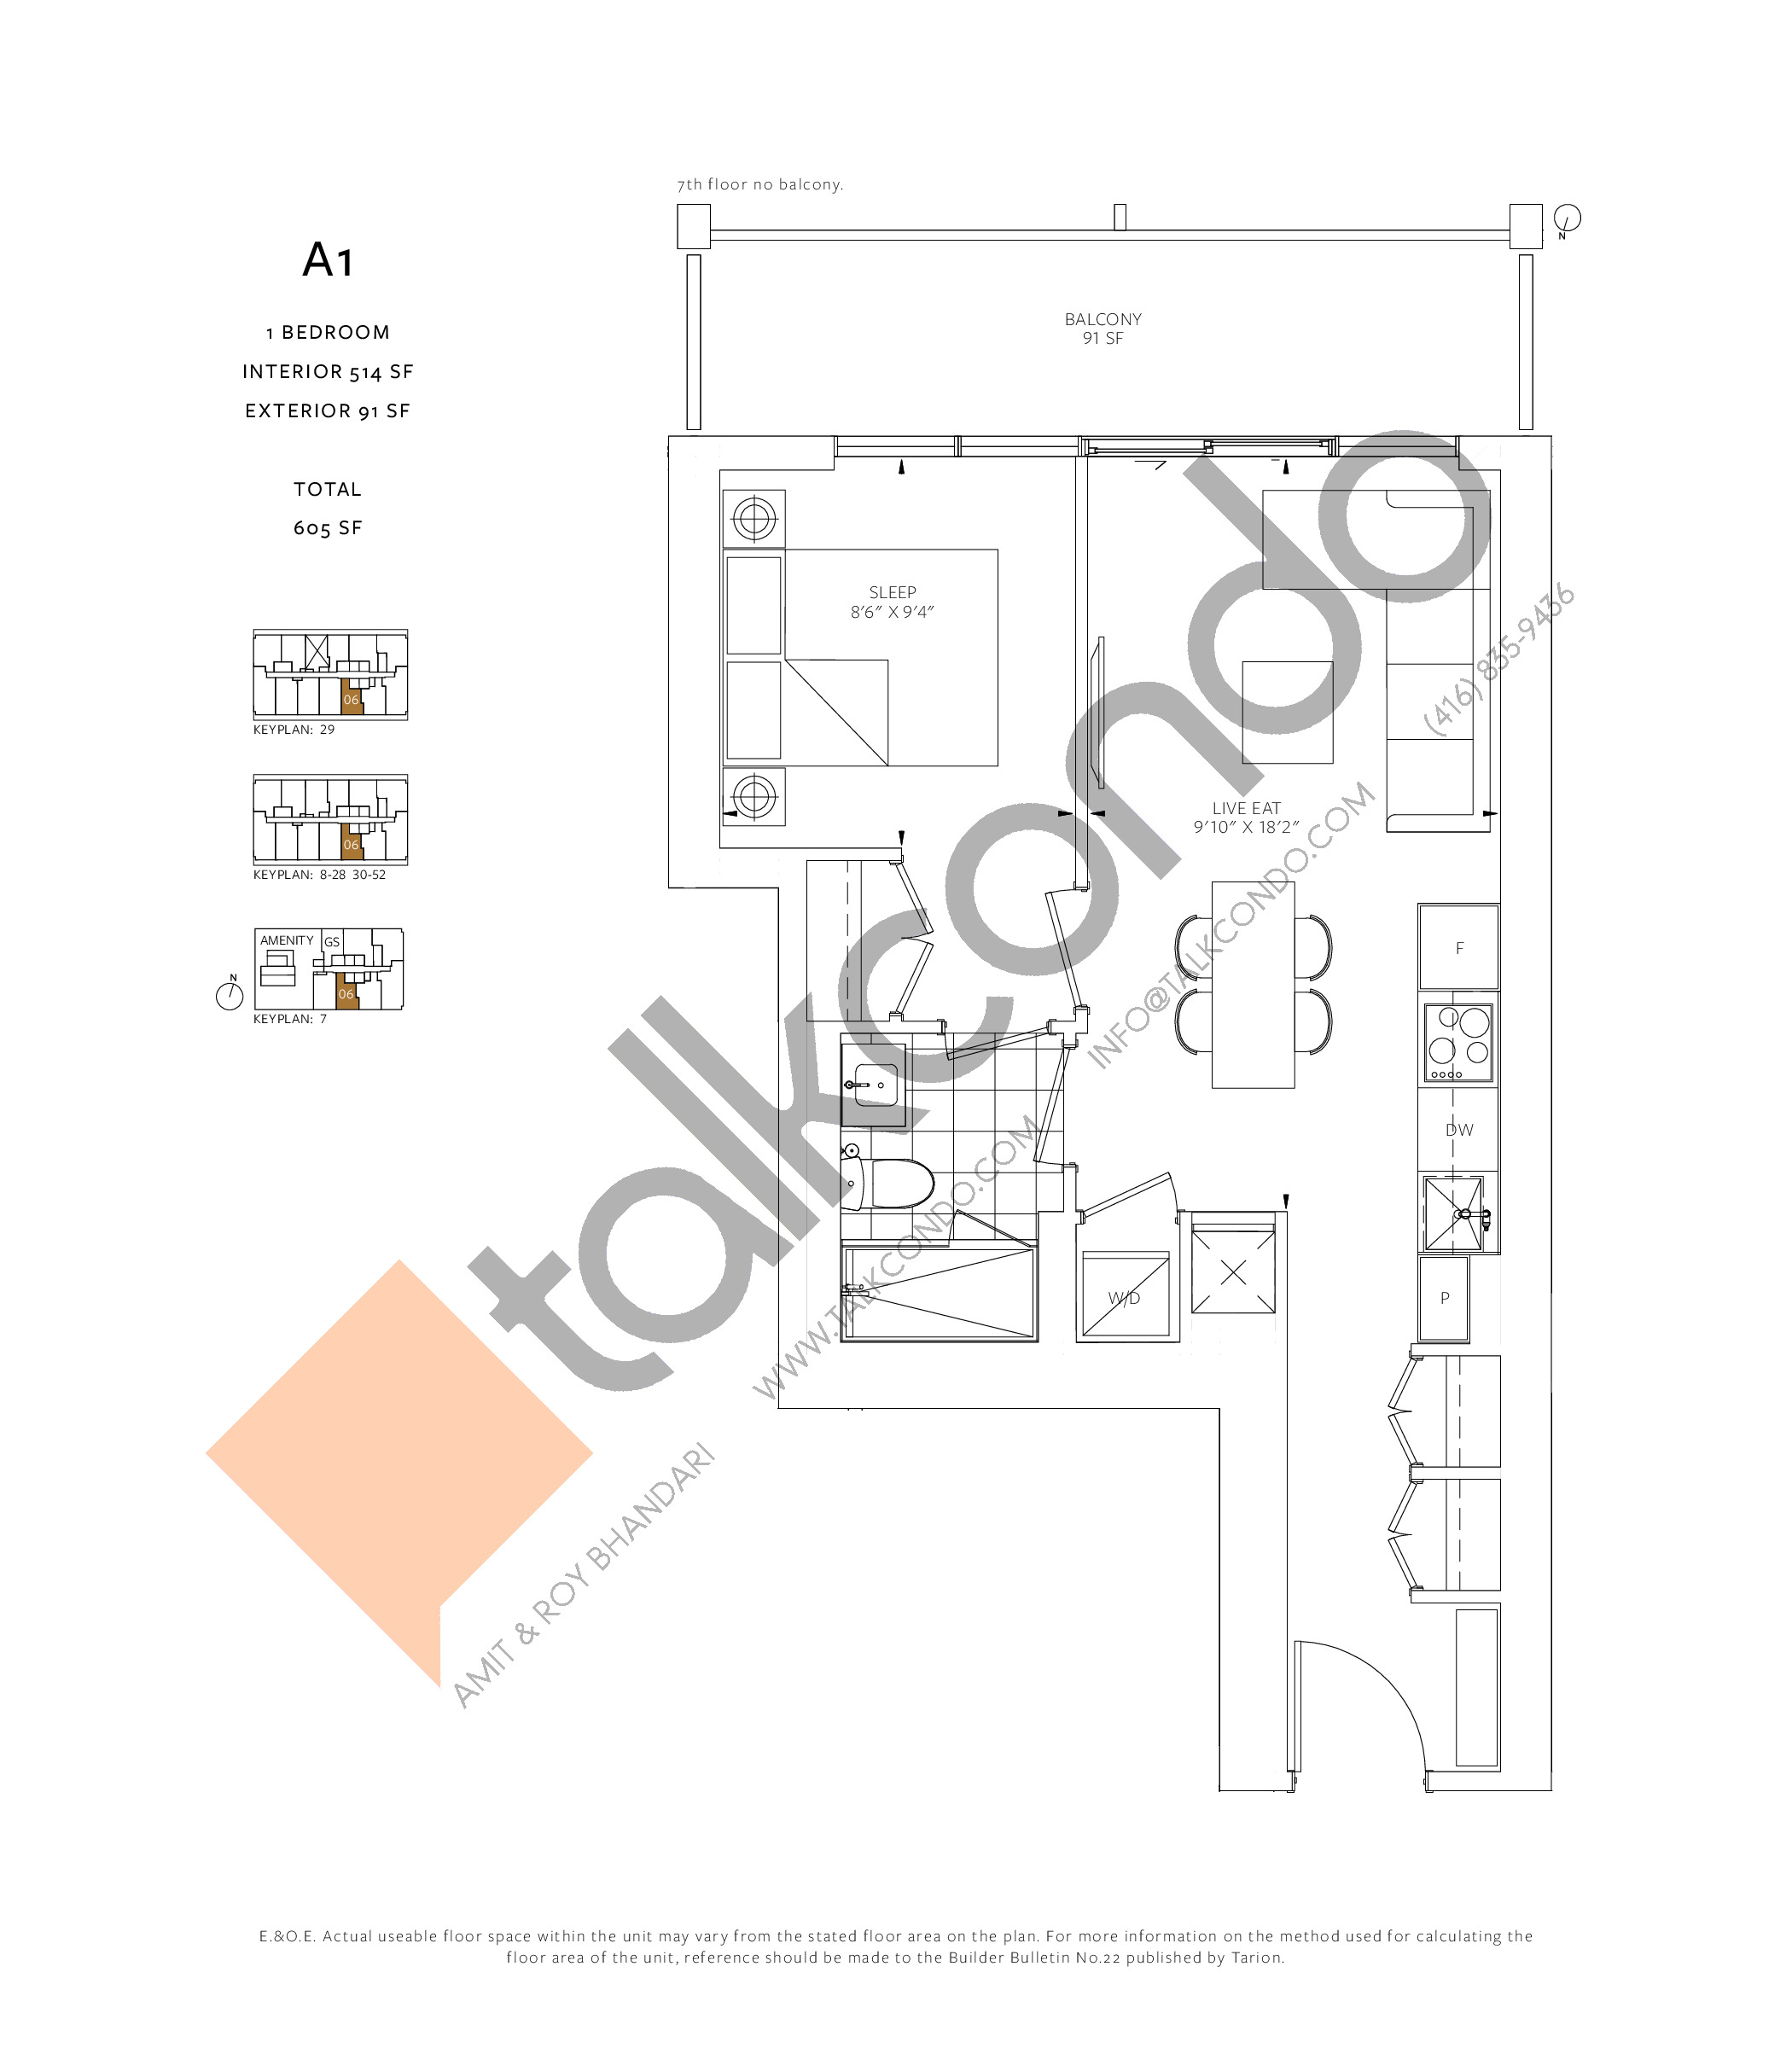 A1 Floor Plan at 88 Queen Condos - Phase 2 - 514 sq.ft